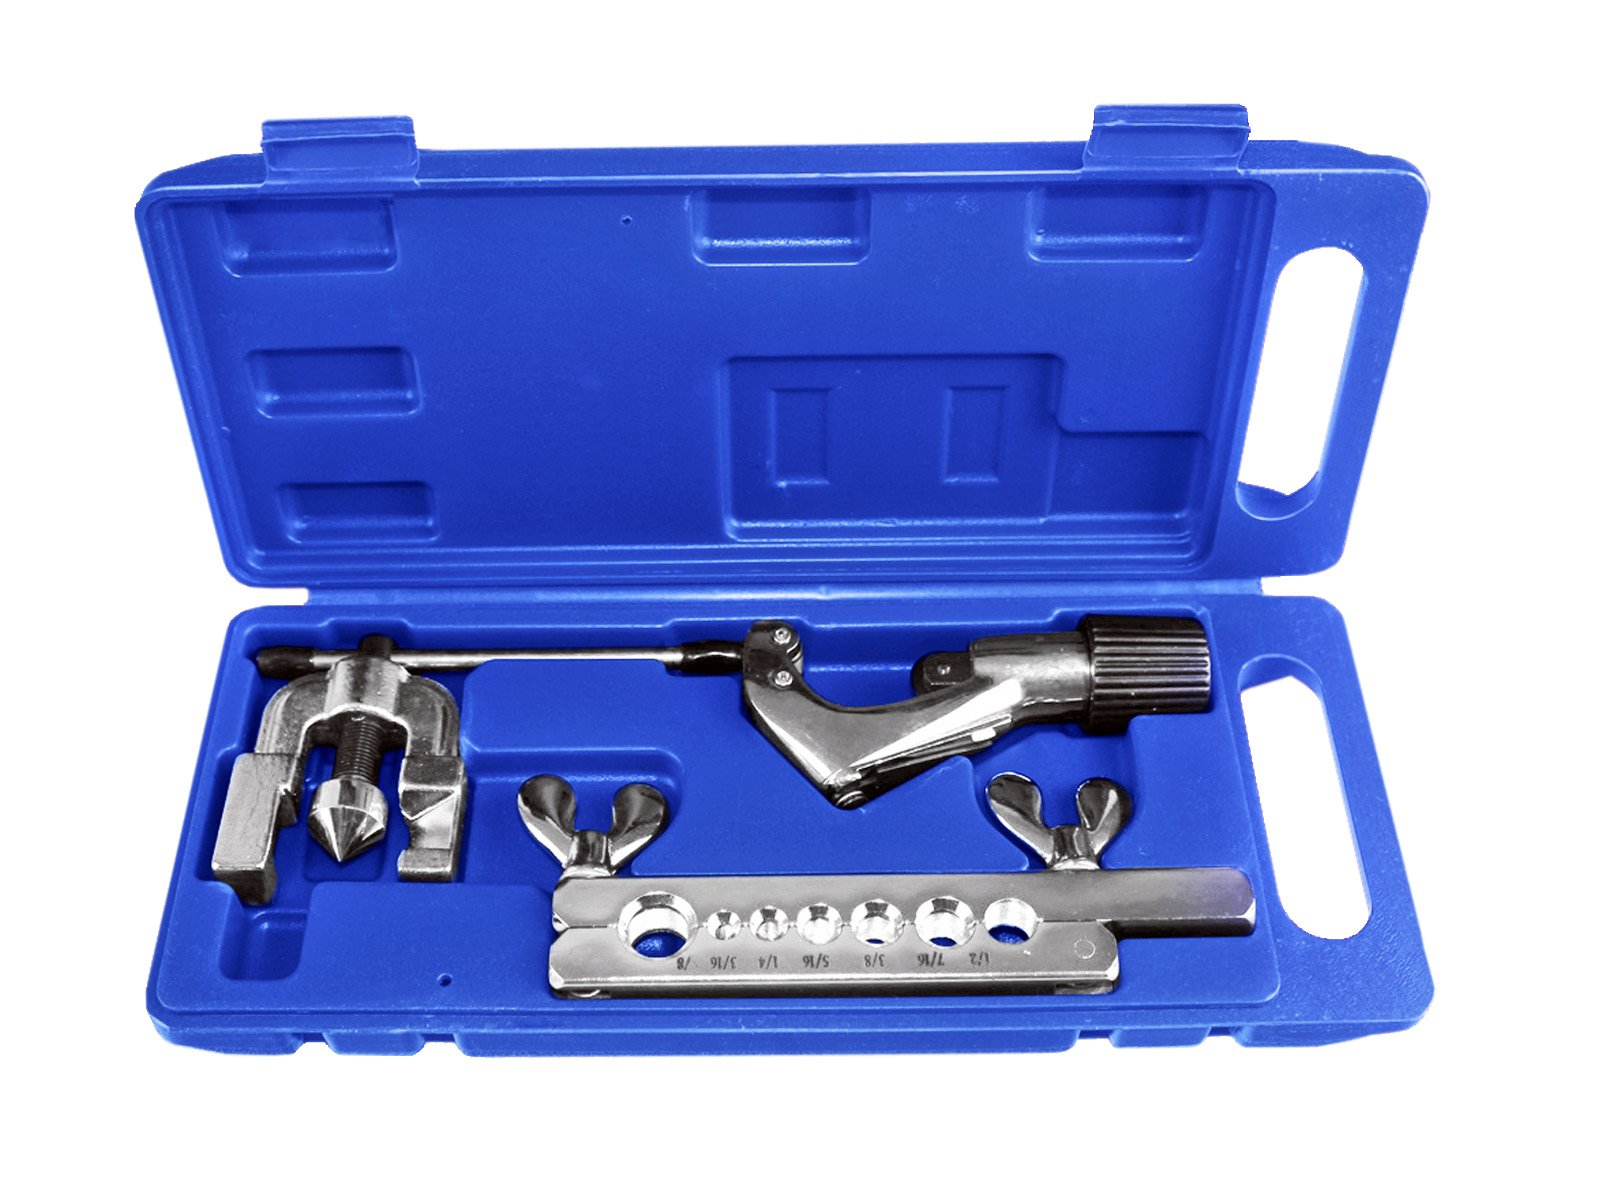 AC Flaring and swaging tool kit FT-1226-AL